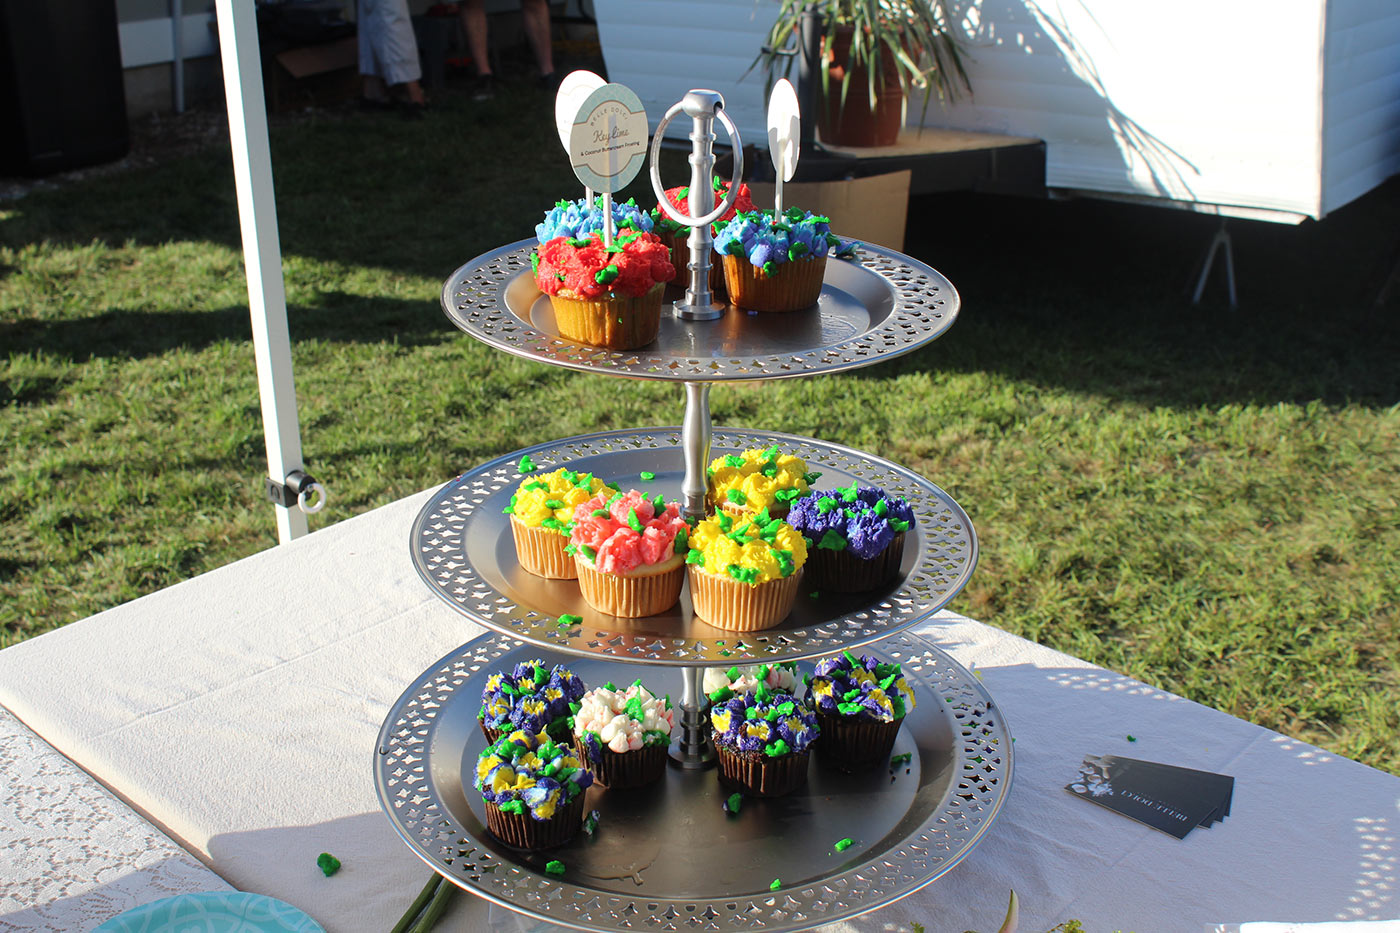 cupcake tower on table